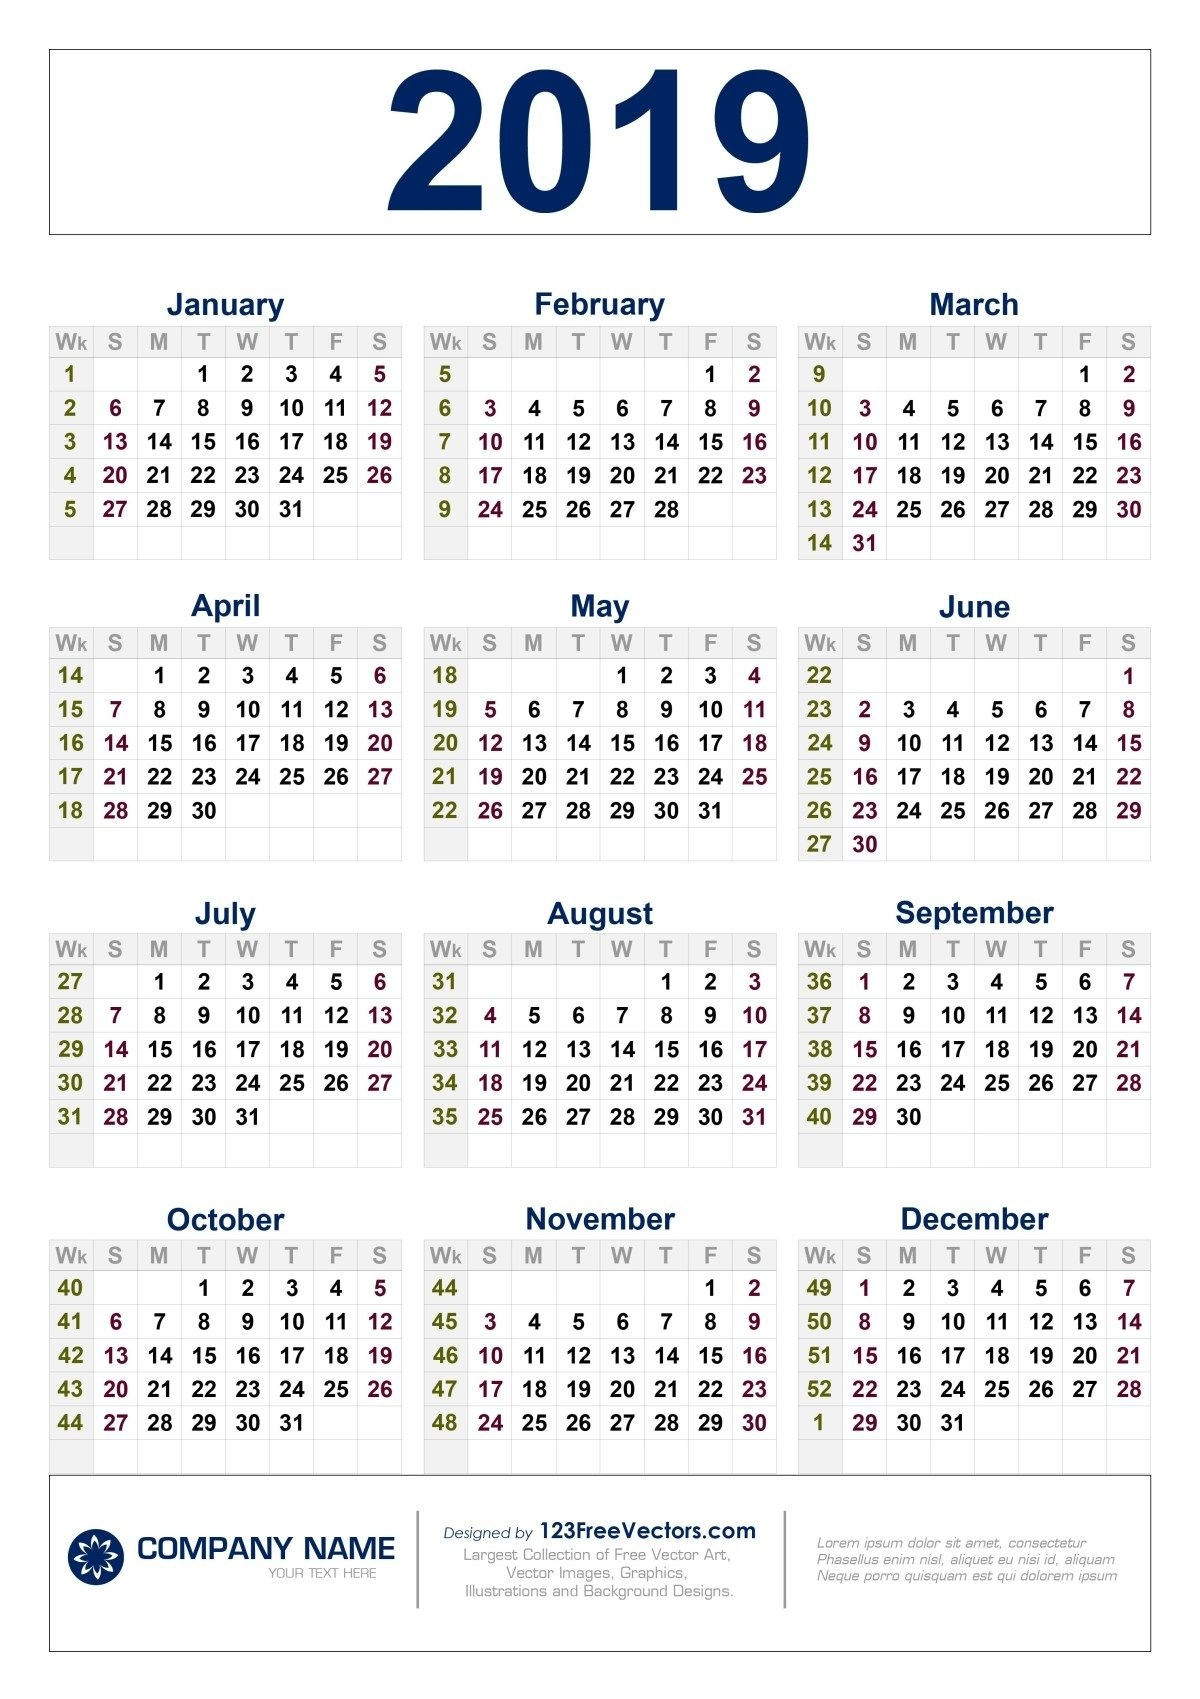 Free Download 2019 Calendar With Week Numbers | Calendar throughout Calendar 2019 2020 With Week Number